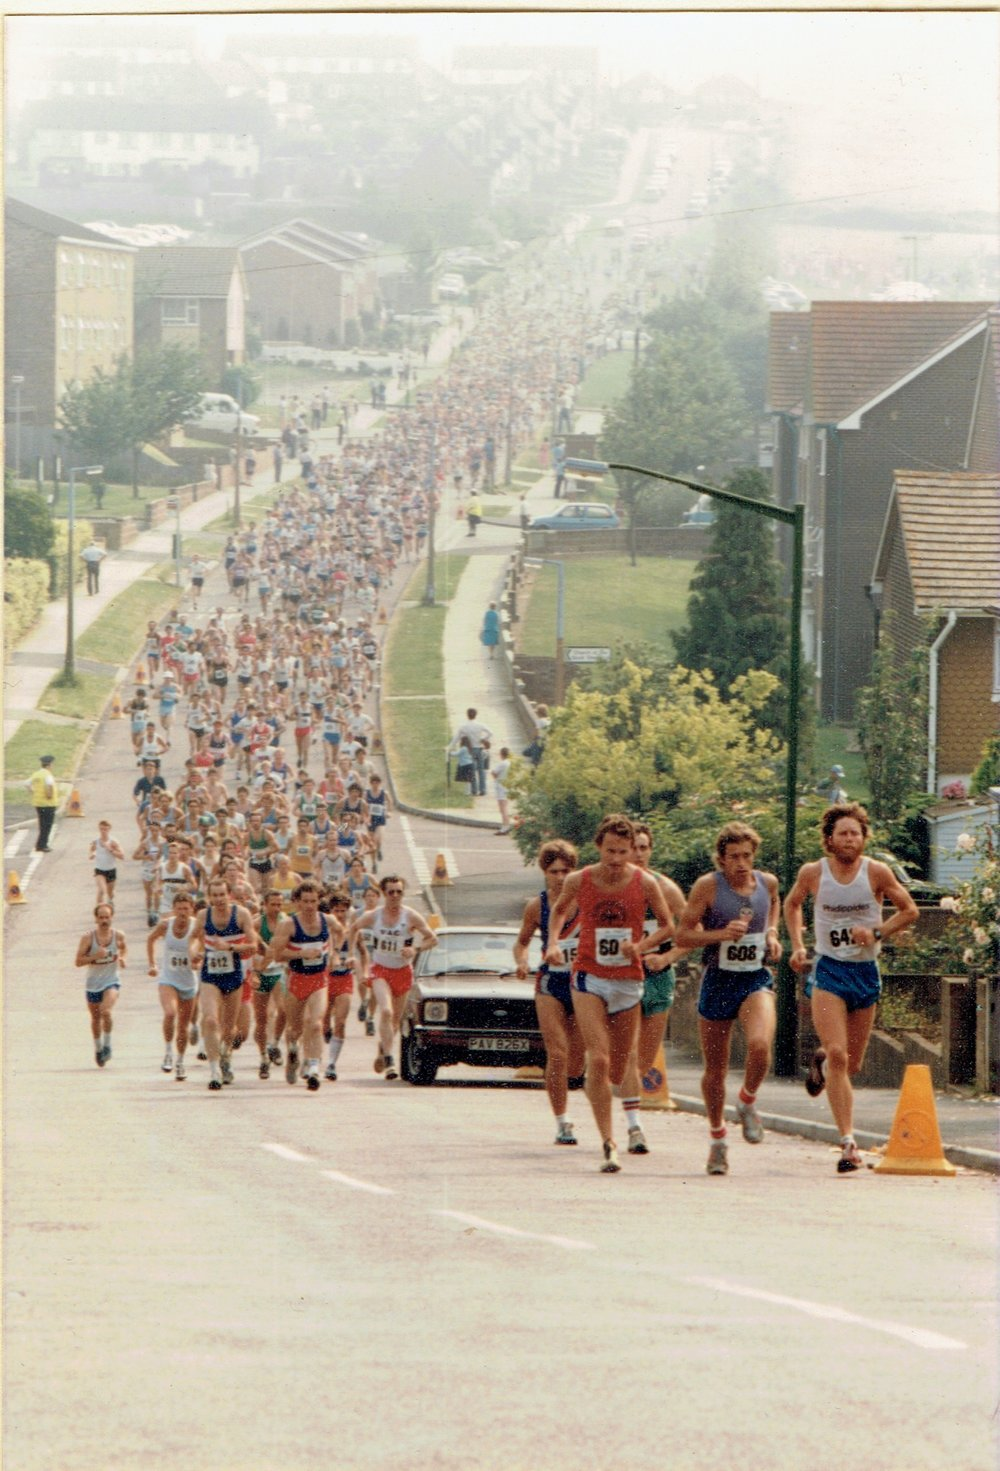 Ah! Those were the days - enjoying the view from the front (in the red vest and white shorts)